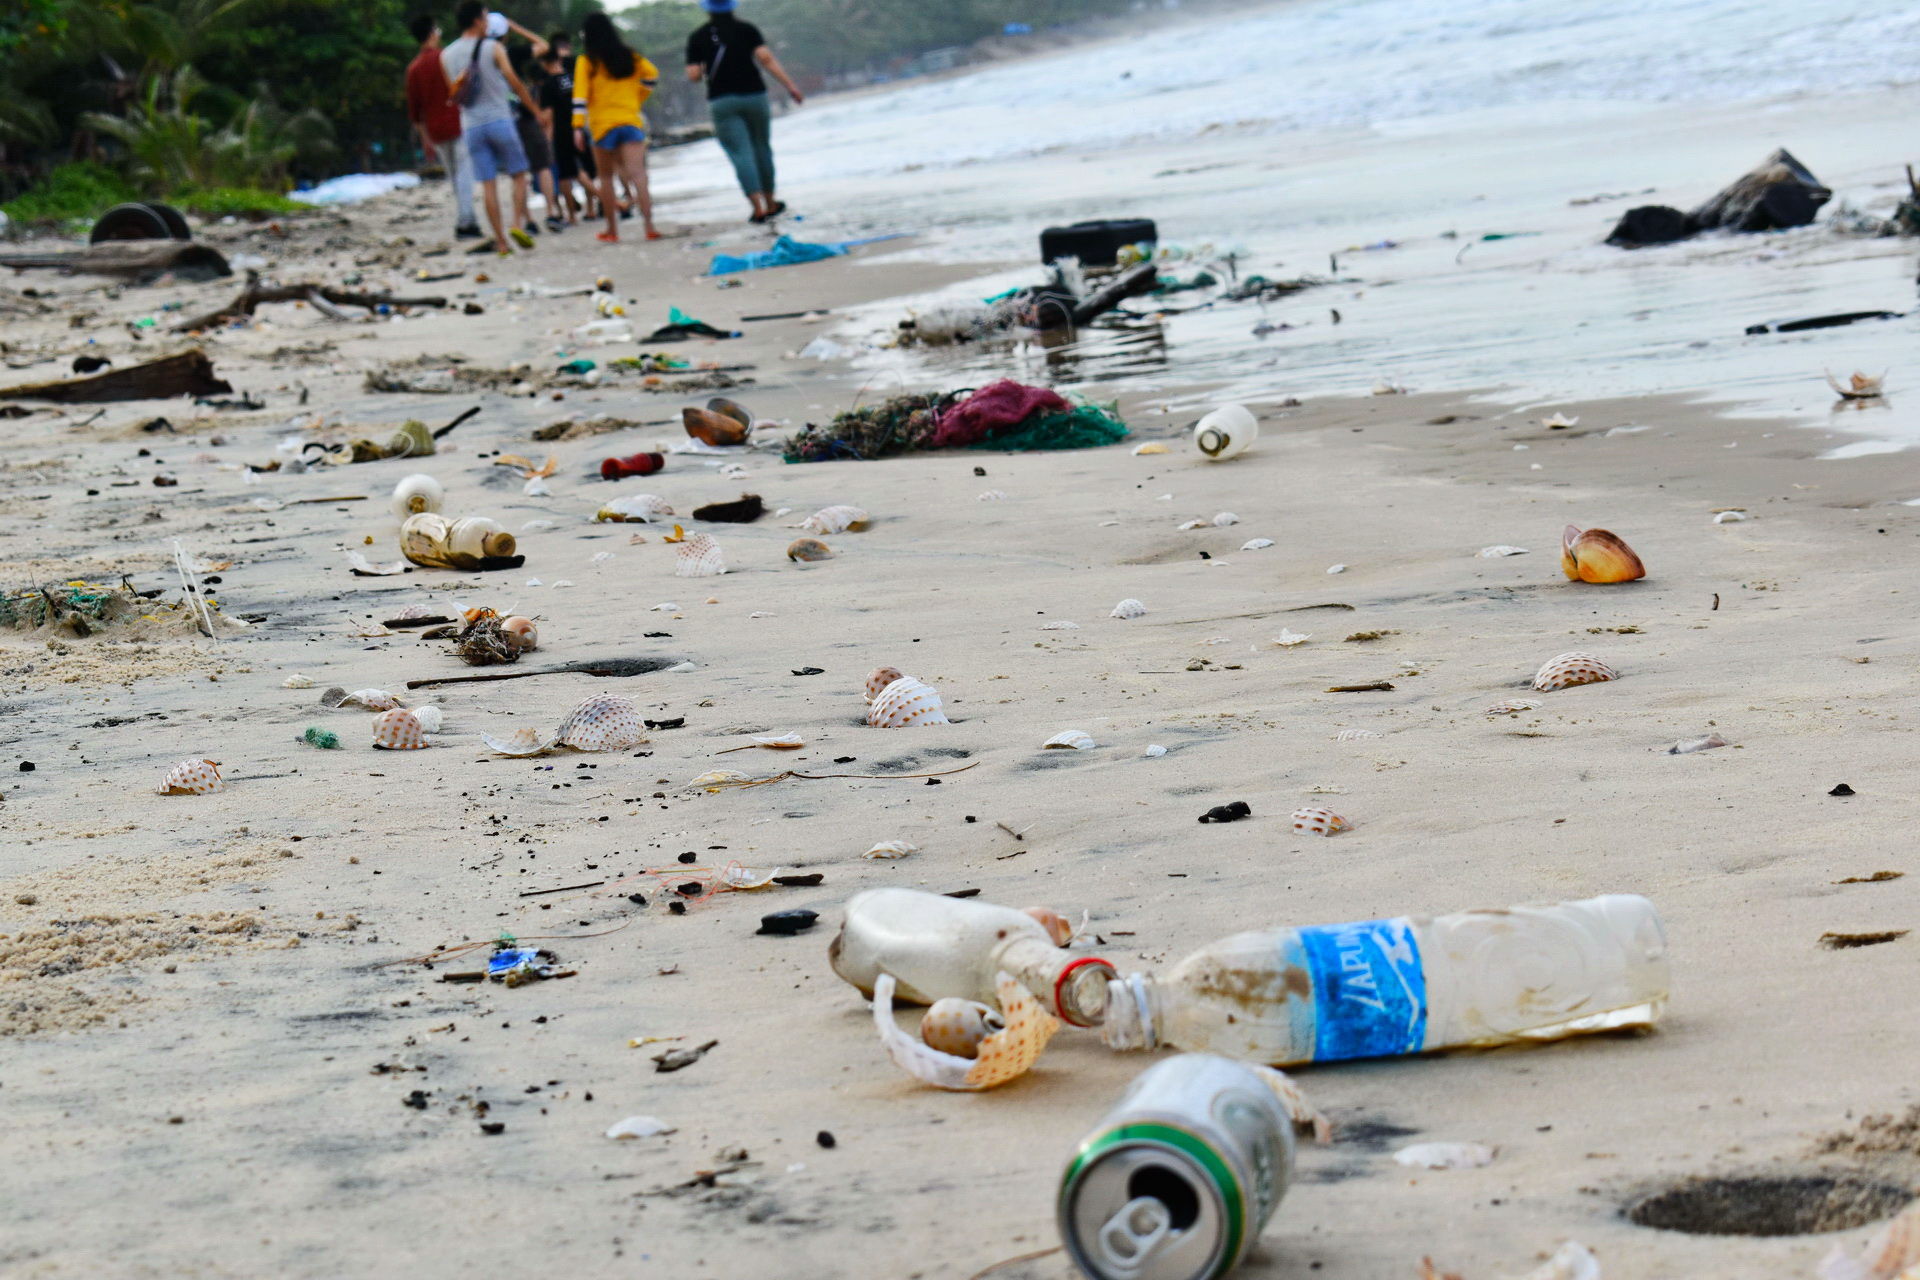 Once-pristine Vietnamese coastline littered with trash